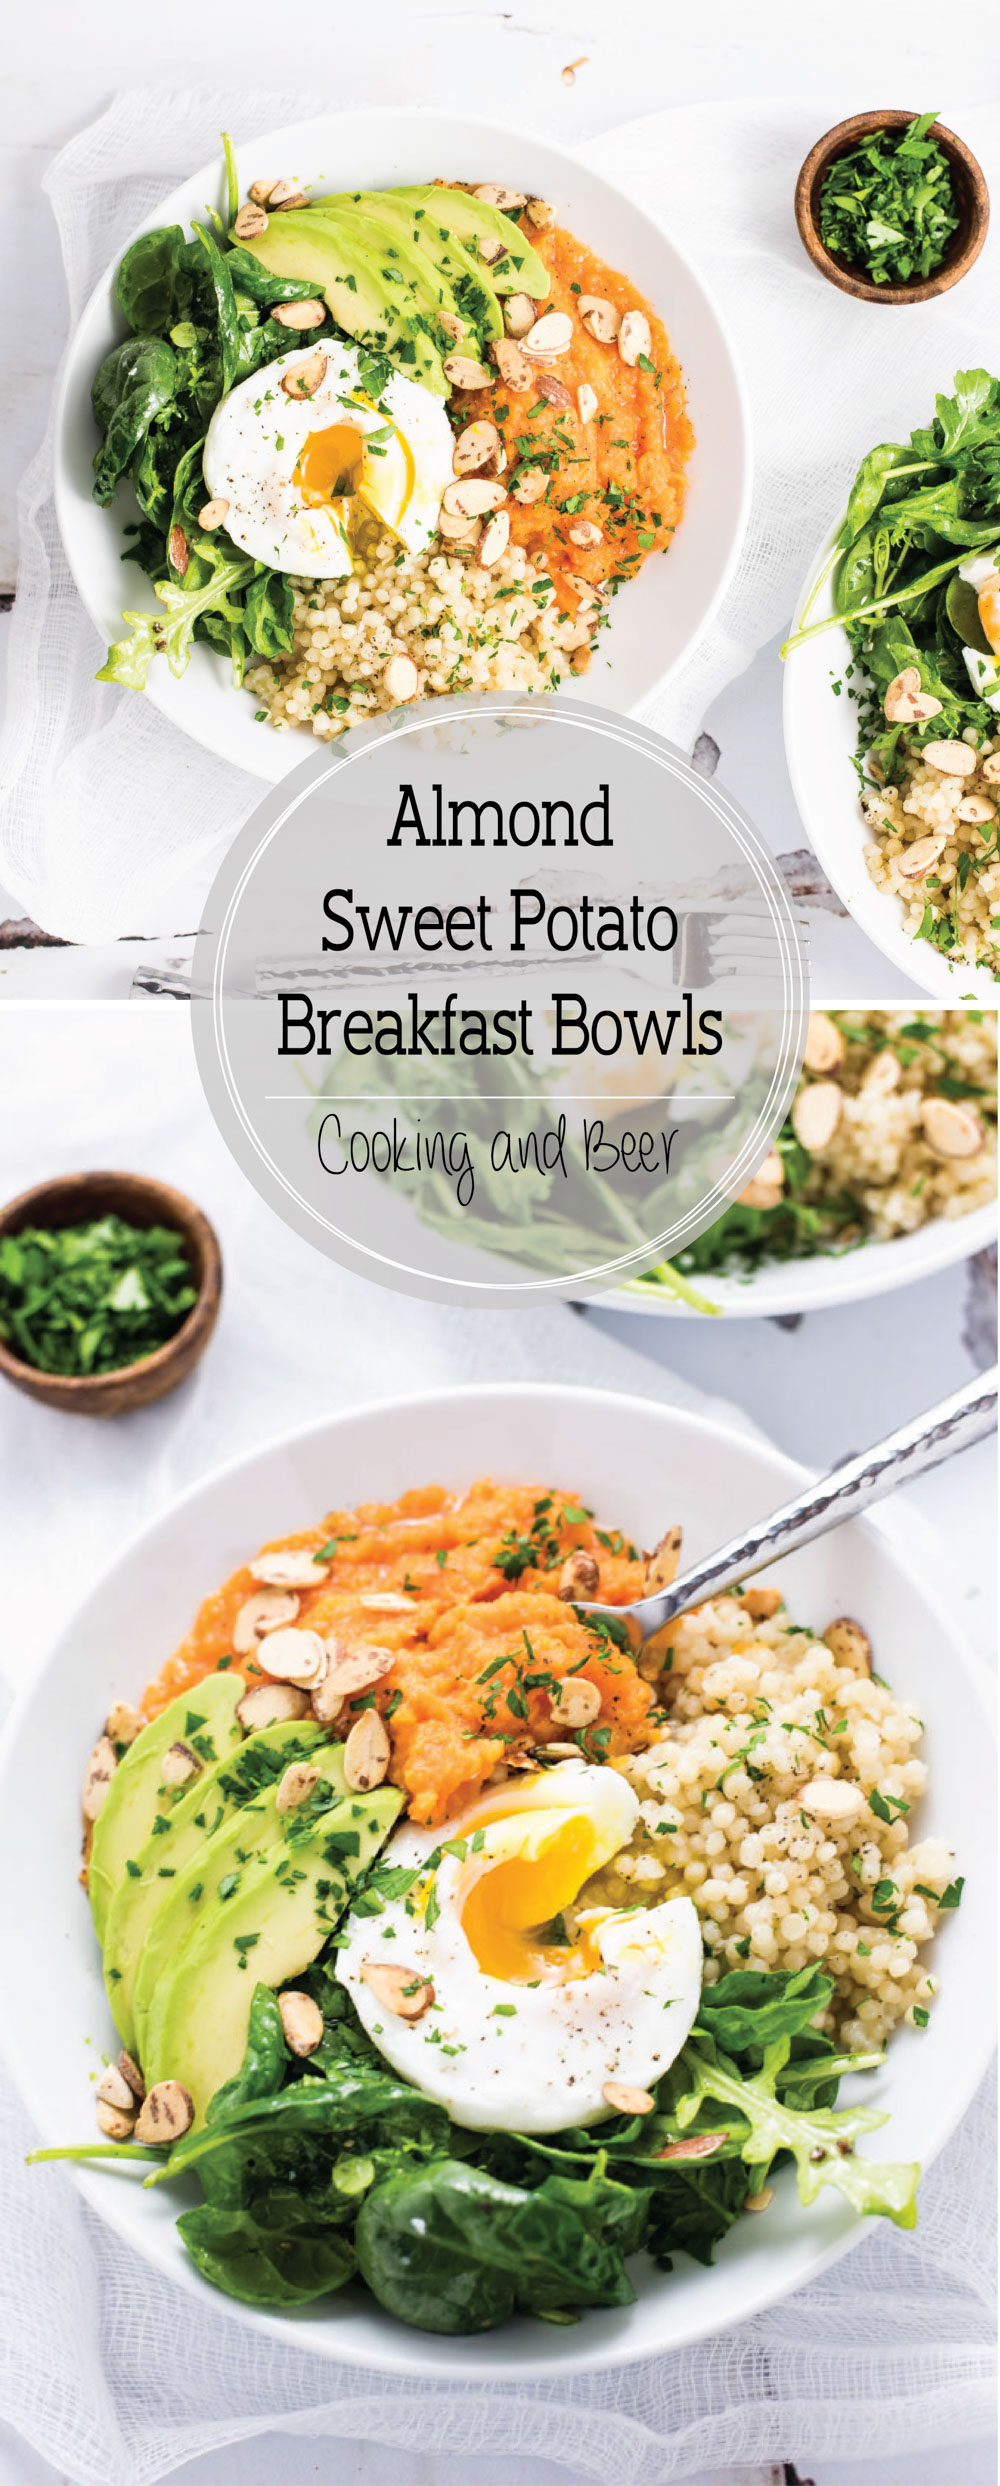 Almond Sweet Potato Breakfast Bowls are a healthy and fulfilling way to start your day!